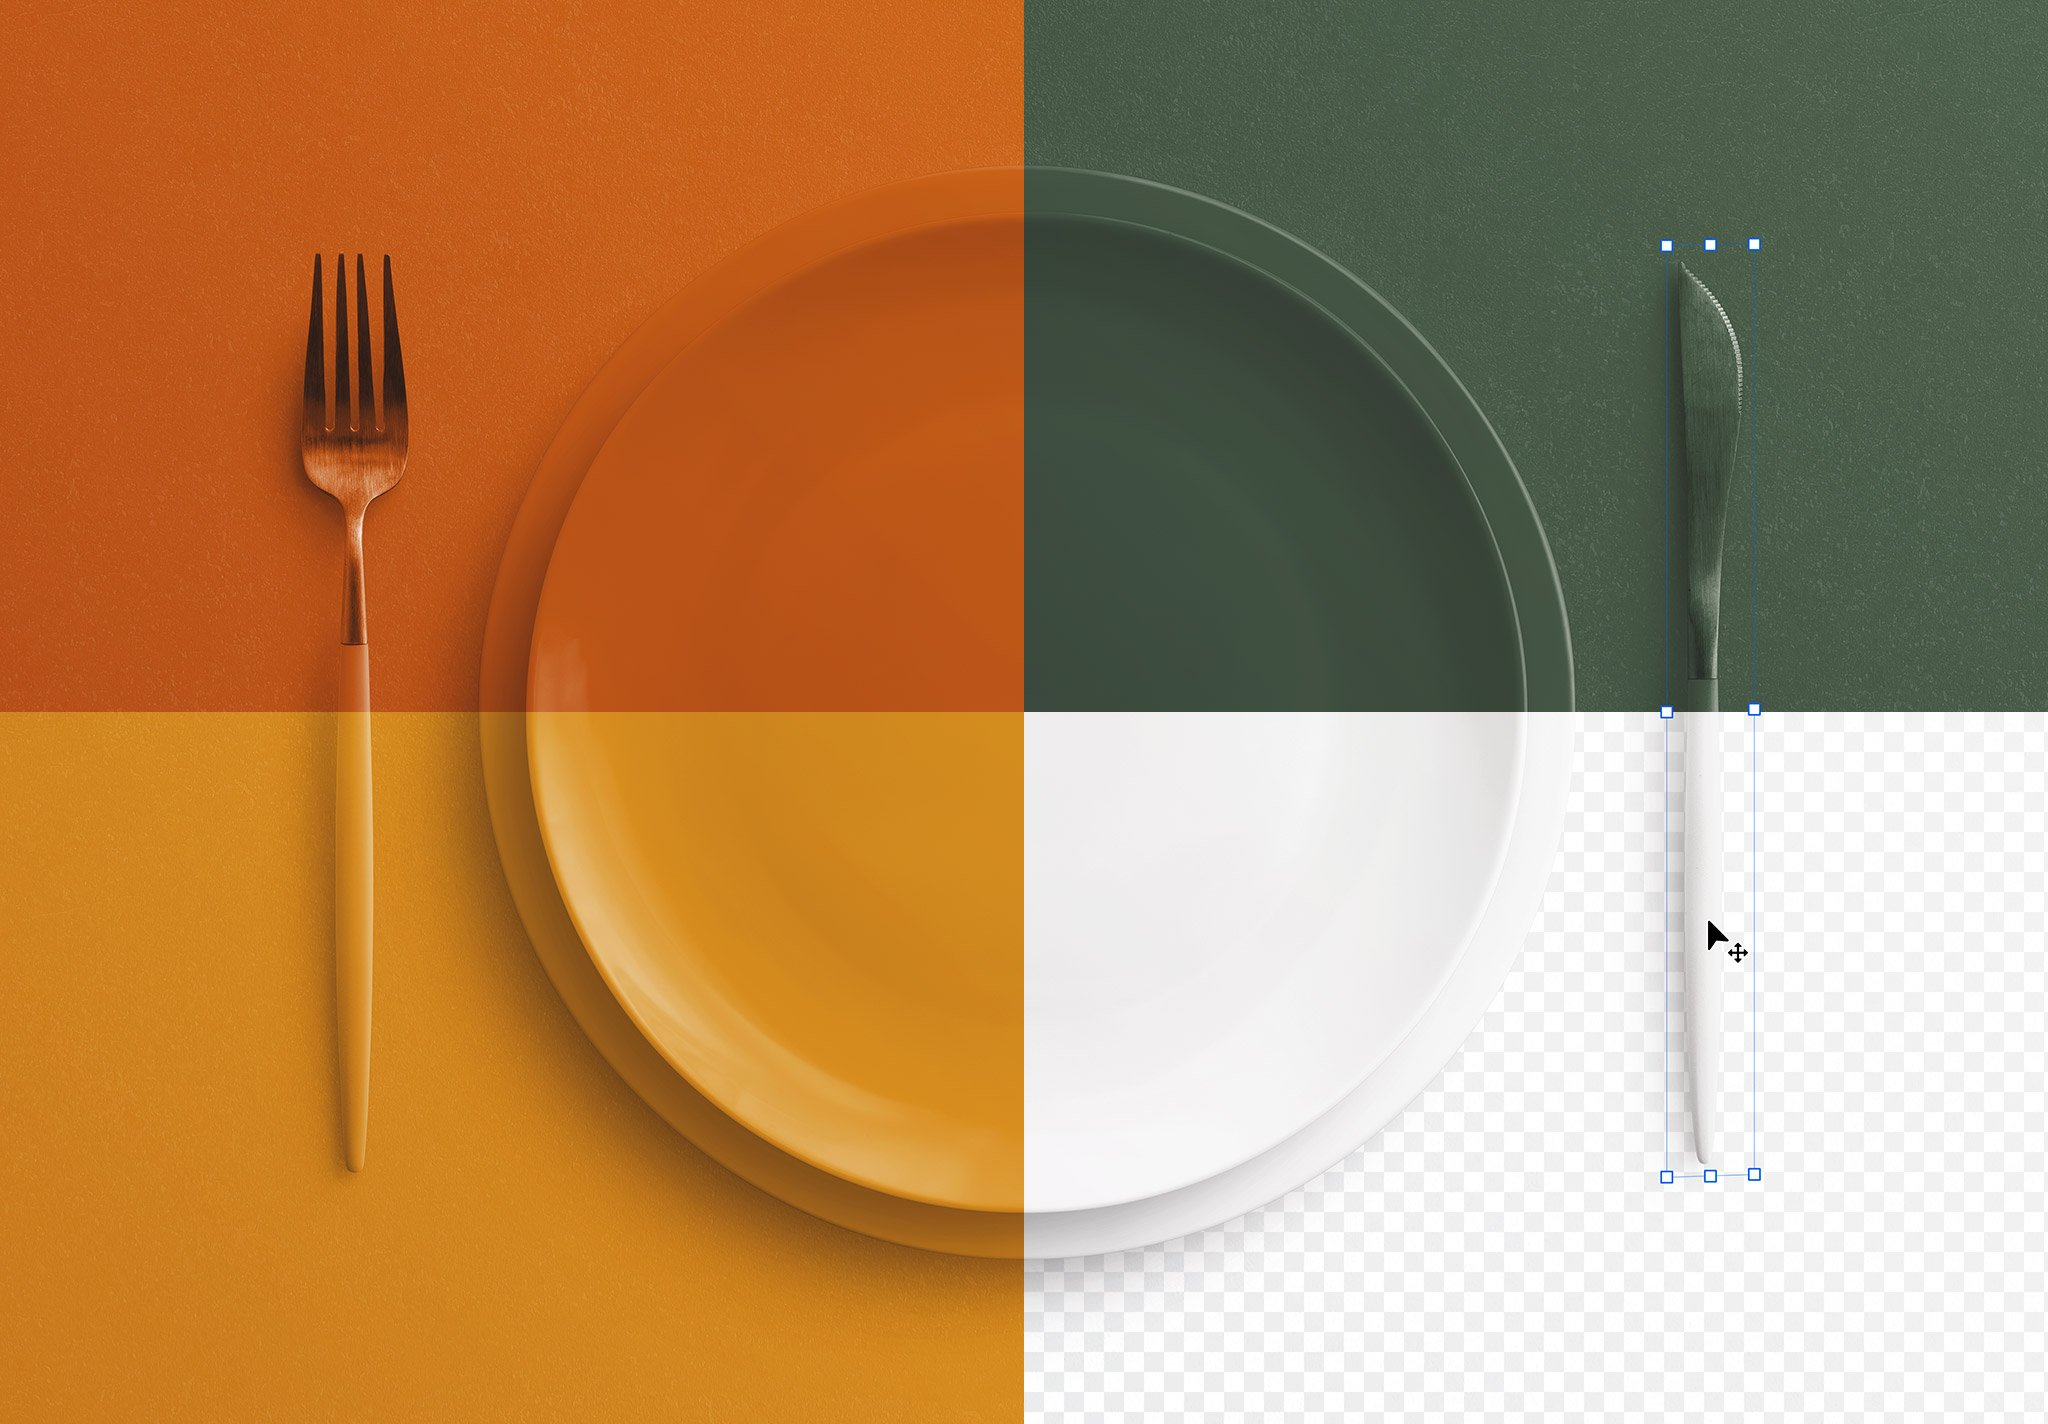 table set mockup plate and cutlery image02